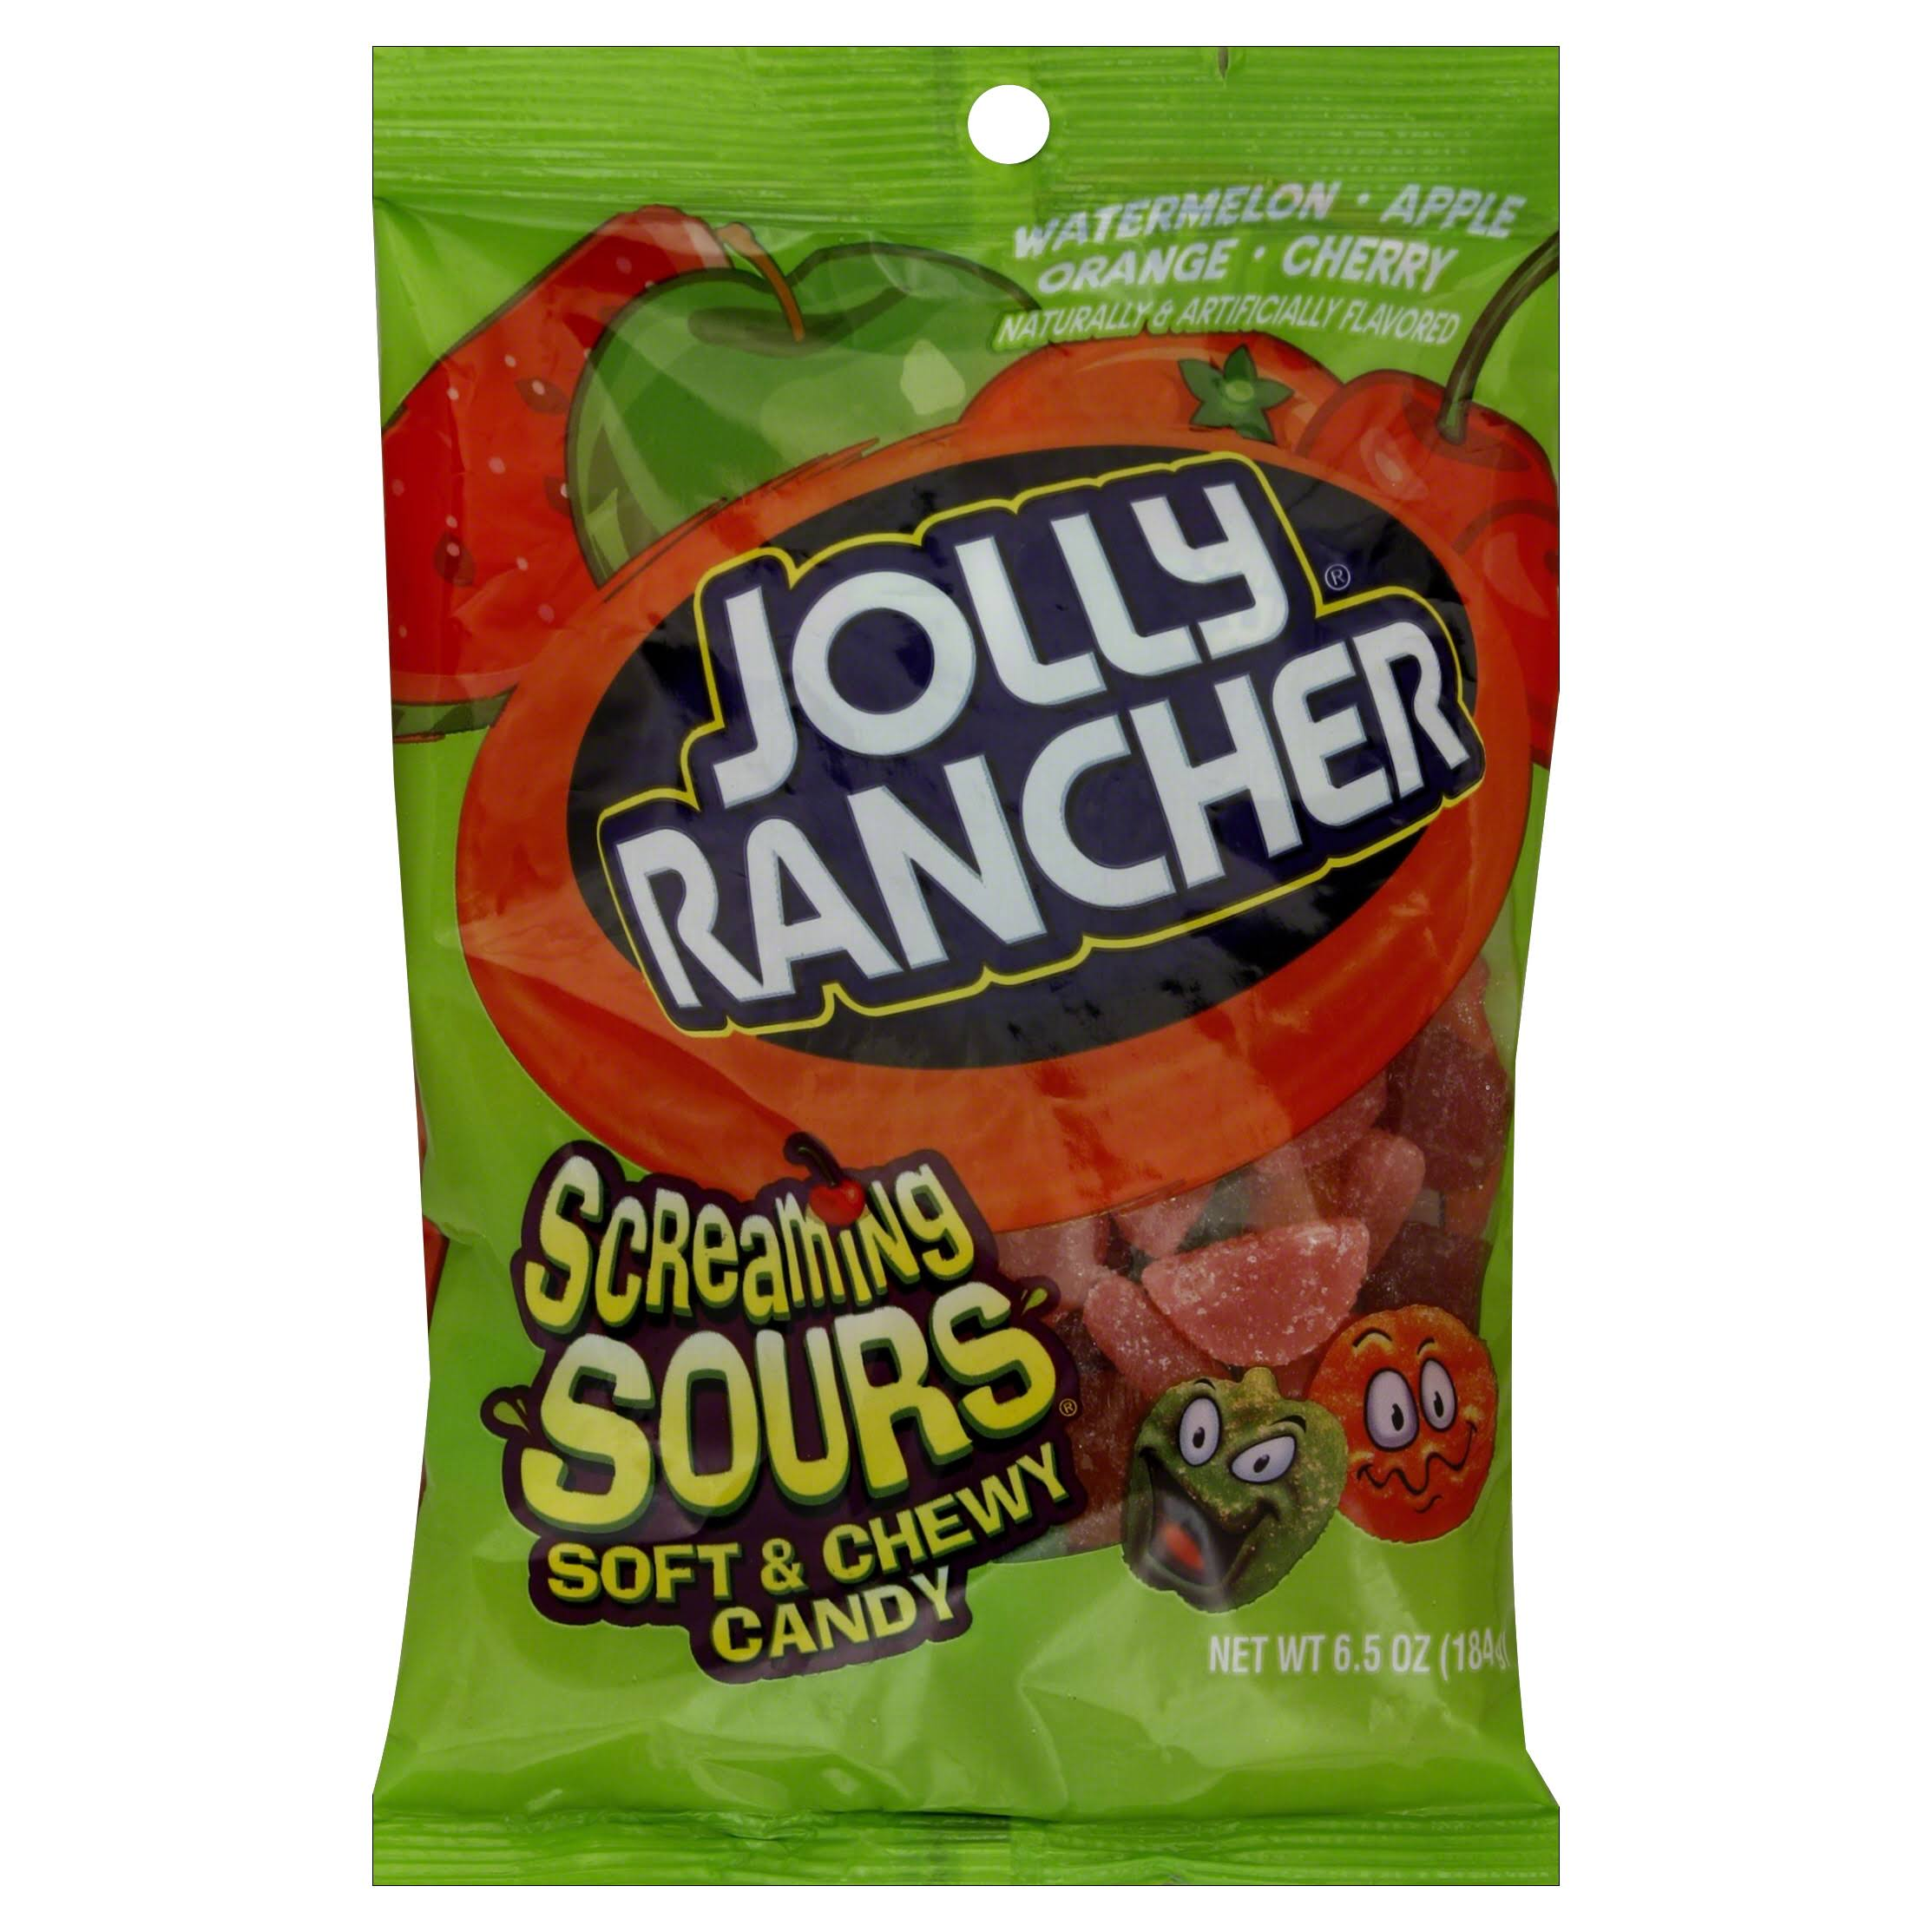 Jolly Rancher Sours Soft and Chewy Candy - 6.5oz, Original Flavor